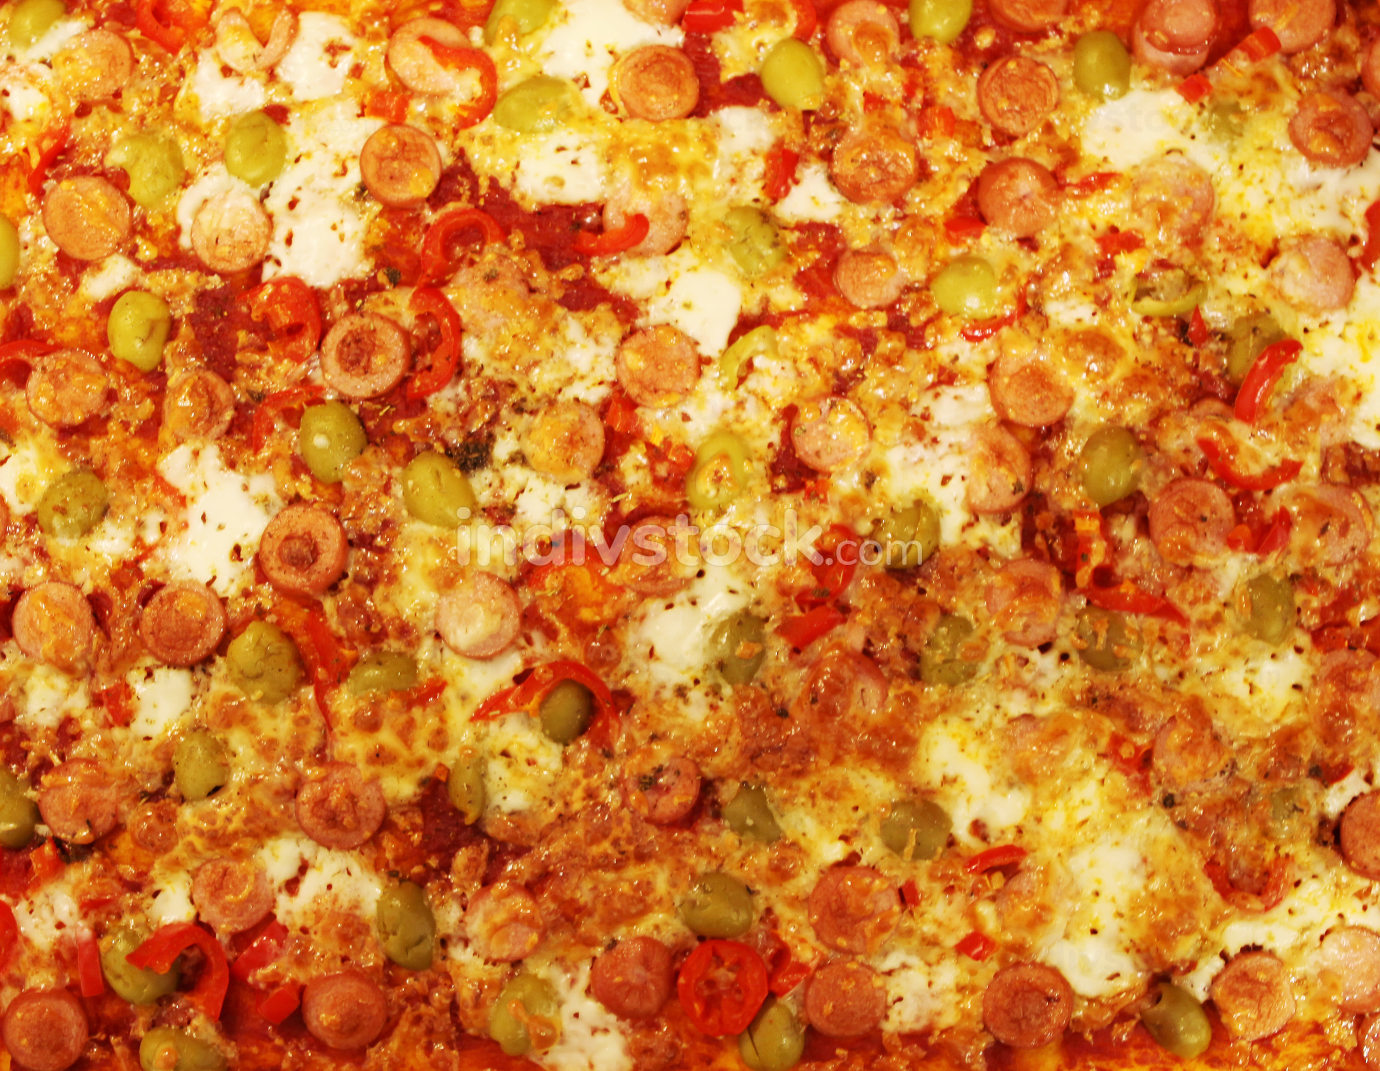 Image Of Hot Homemade Pizza